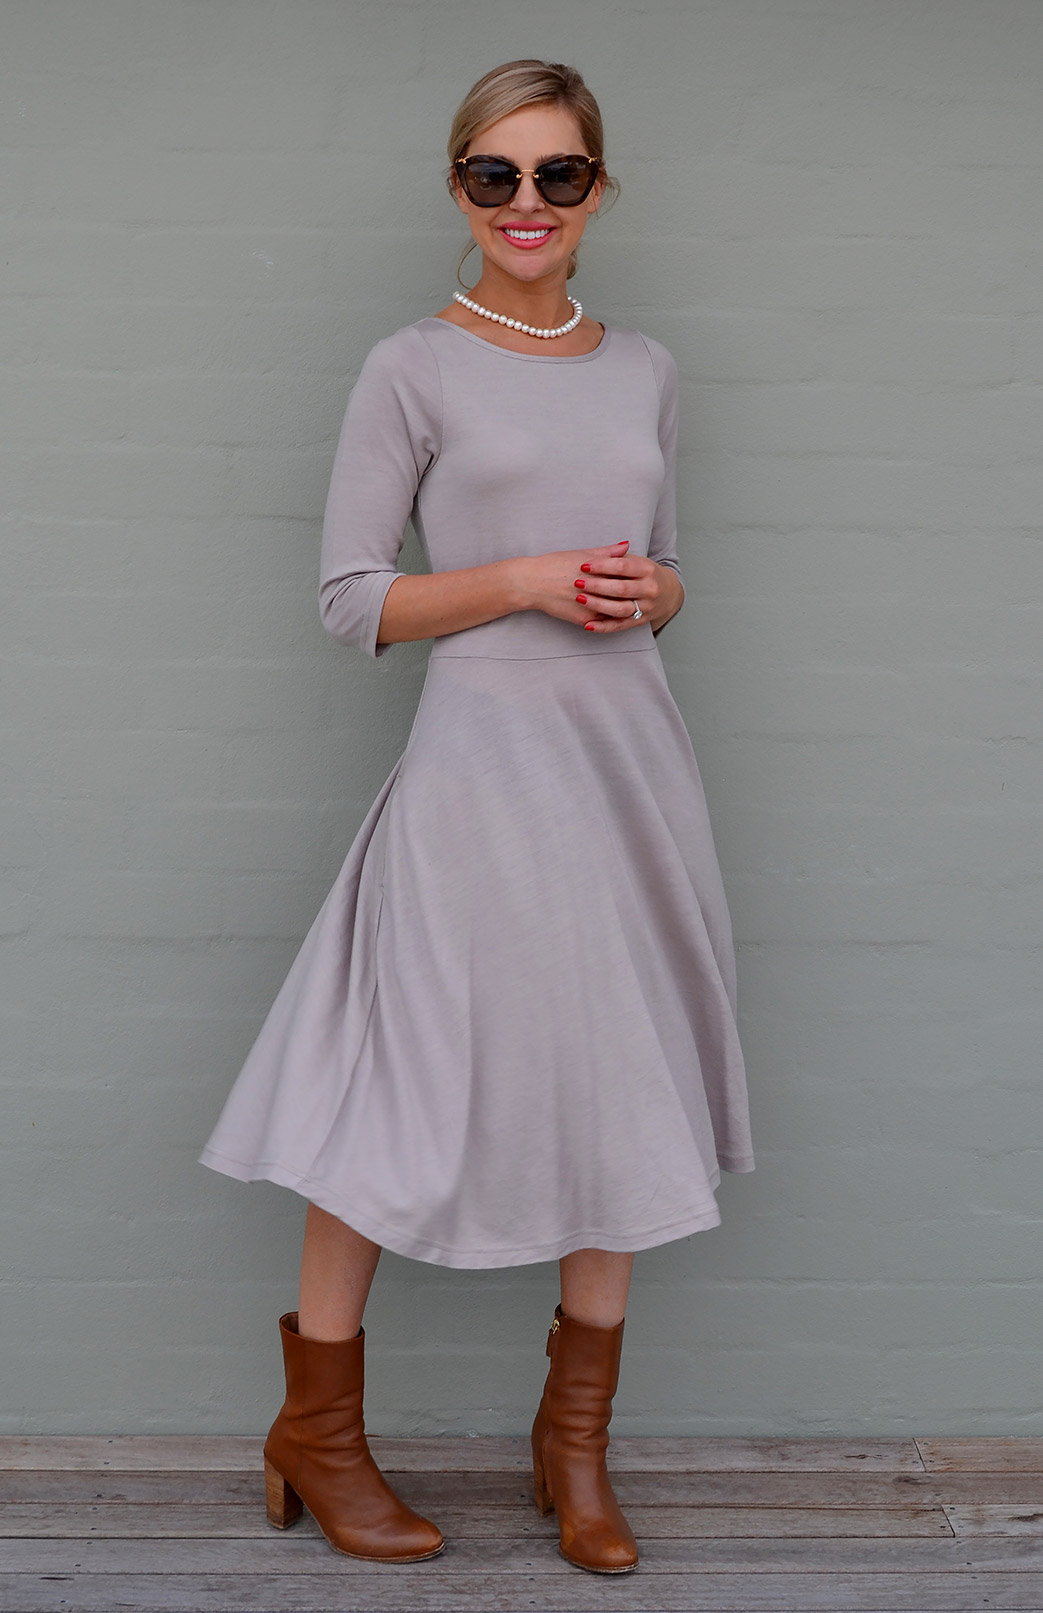 Mary Dress - Women's Stunning Merino Wool Classic Dress - Smitten Merino Tasmania Australia